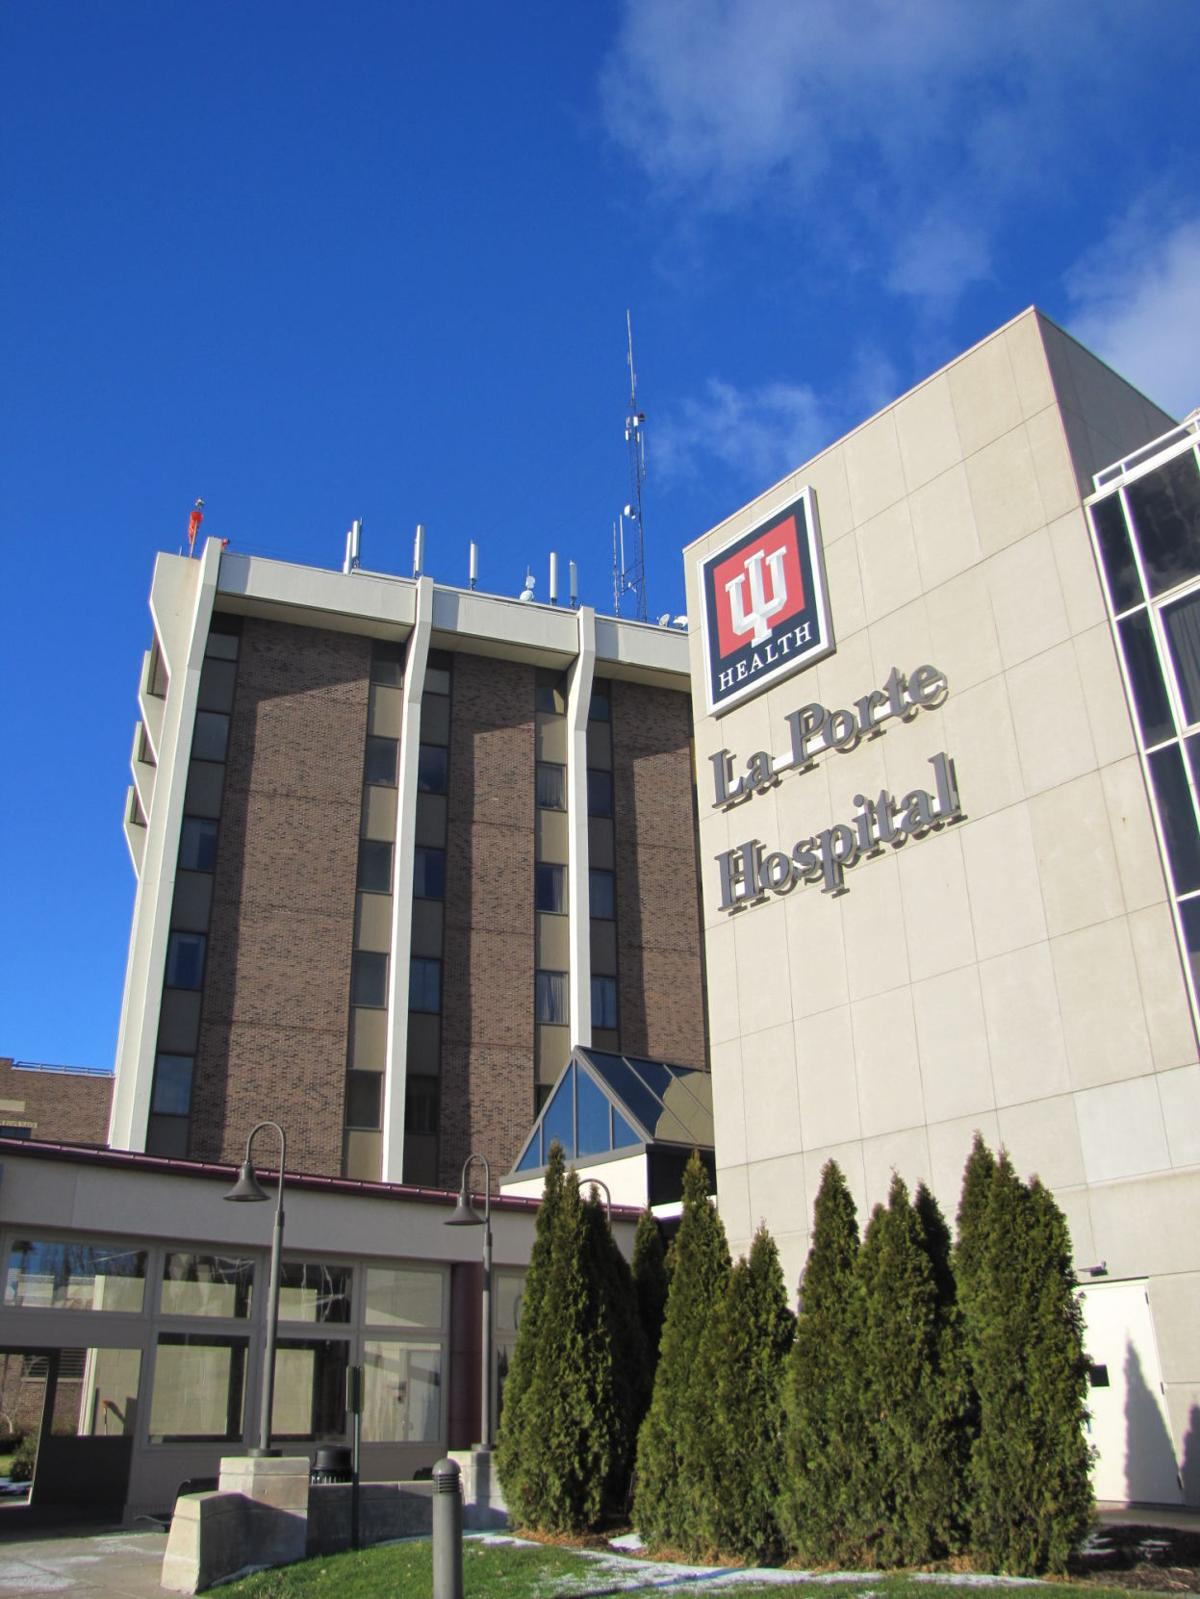 Current workers retained in laporte starke hospital for Iu laporte hospital